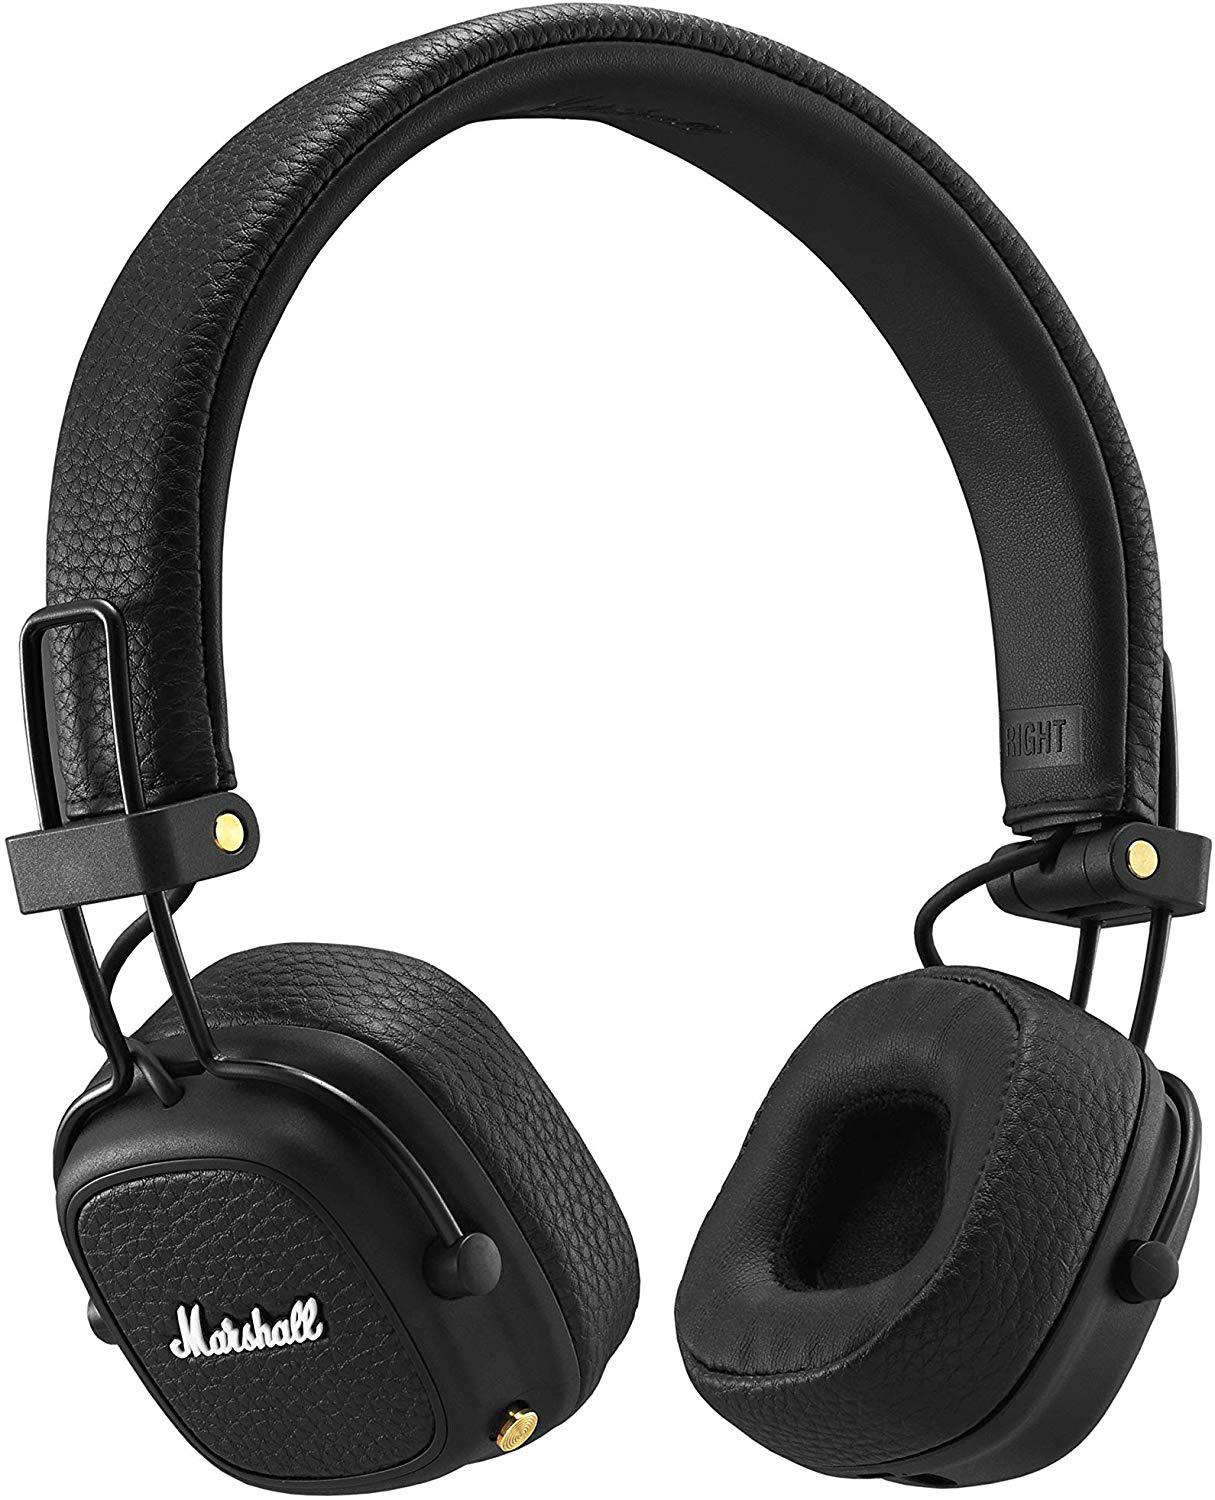 New Major III Wireless Bluetooth Headphone For Pop Rock Music With Leather Microphone Bass Effect enlarge